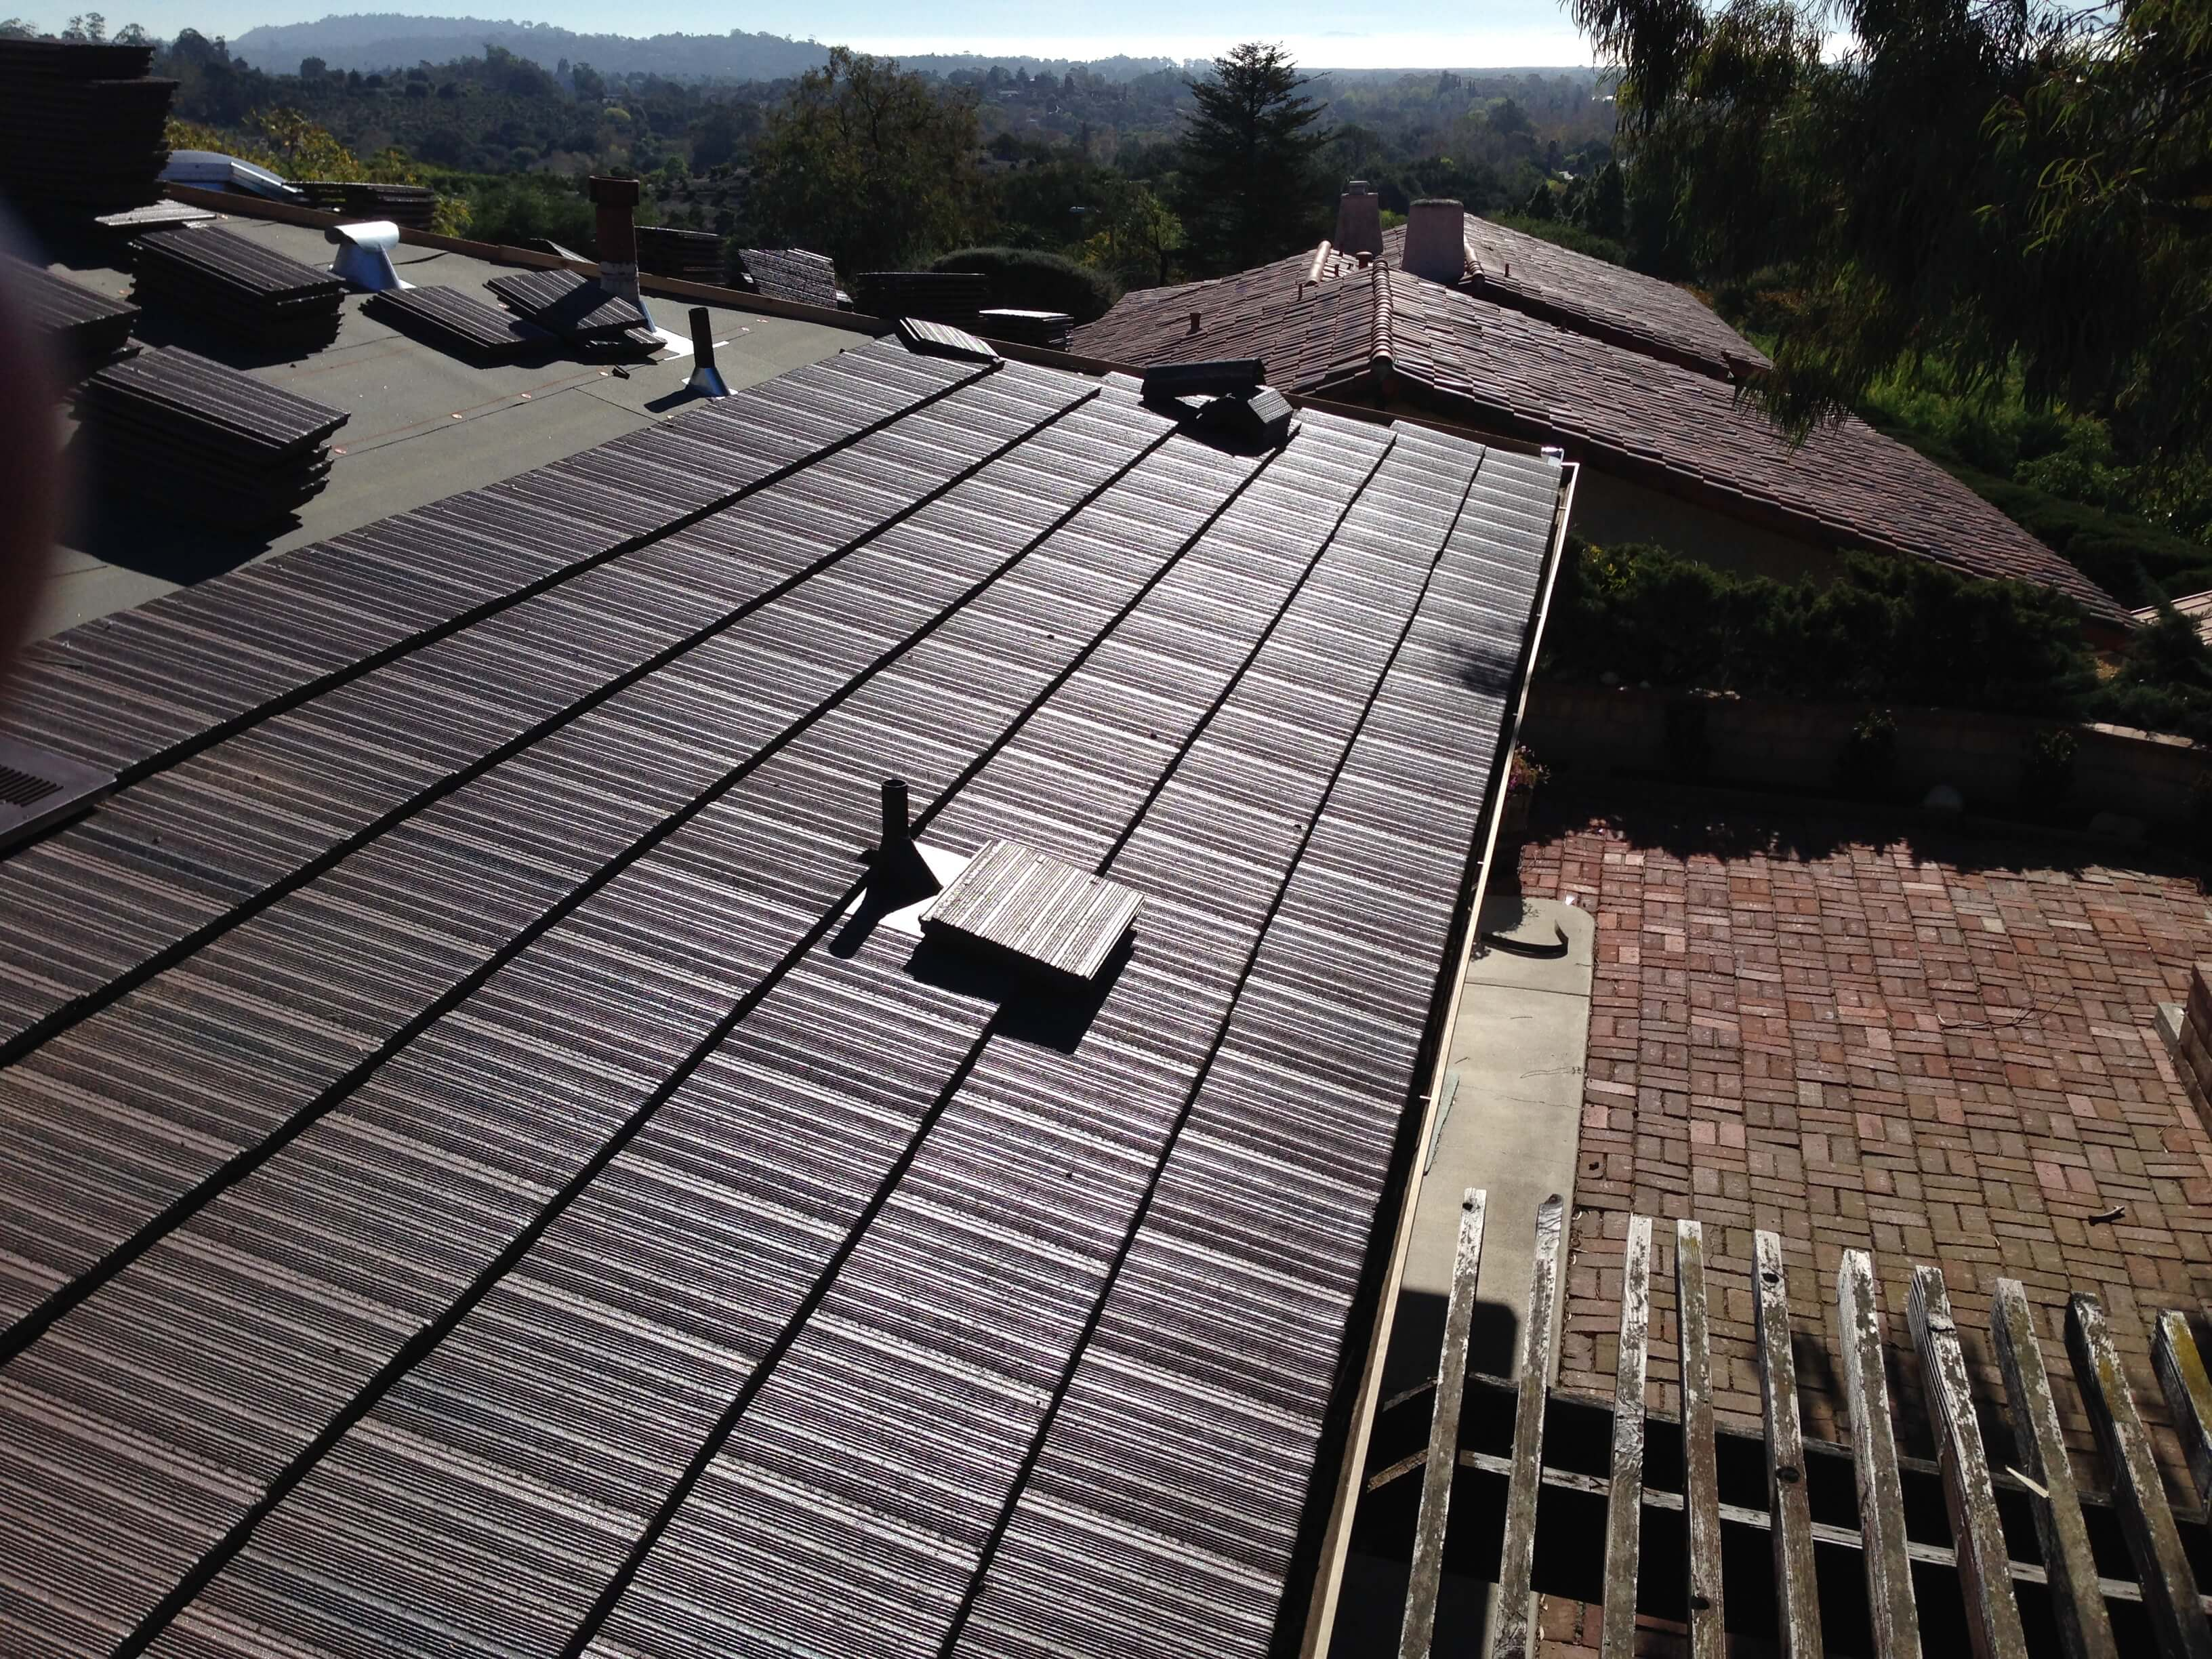 Santa barbara roofing system examples by quality roofing for Flat tile roof